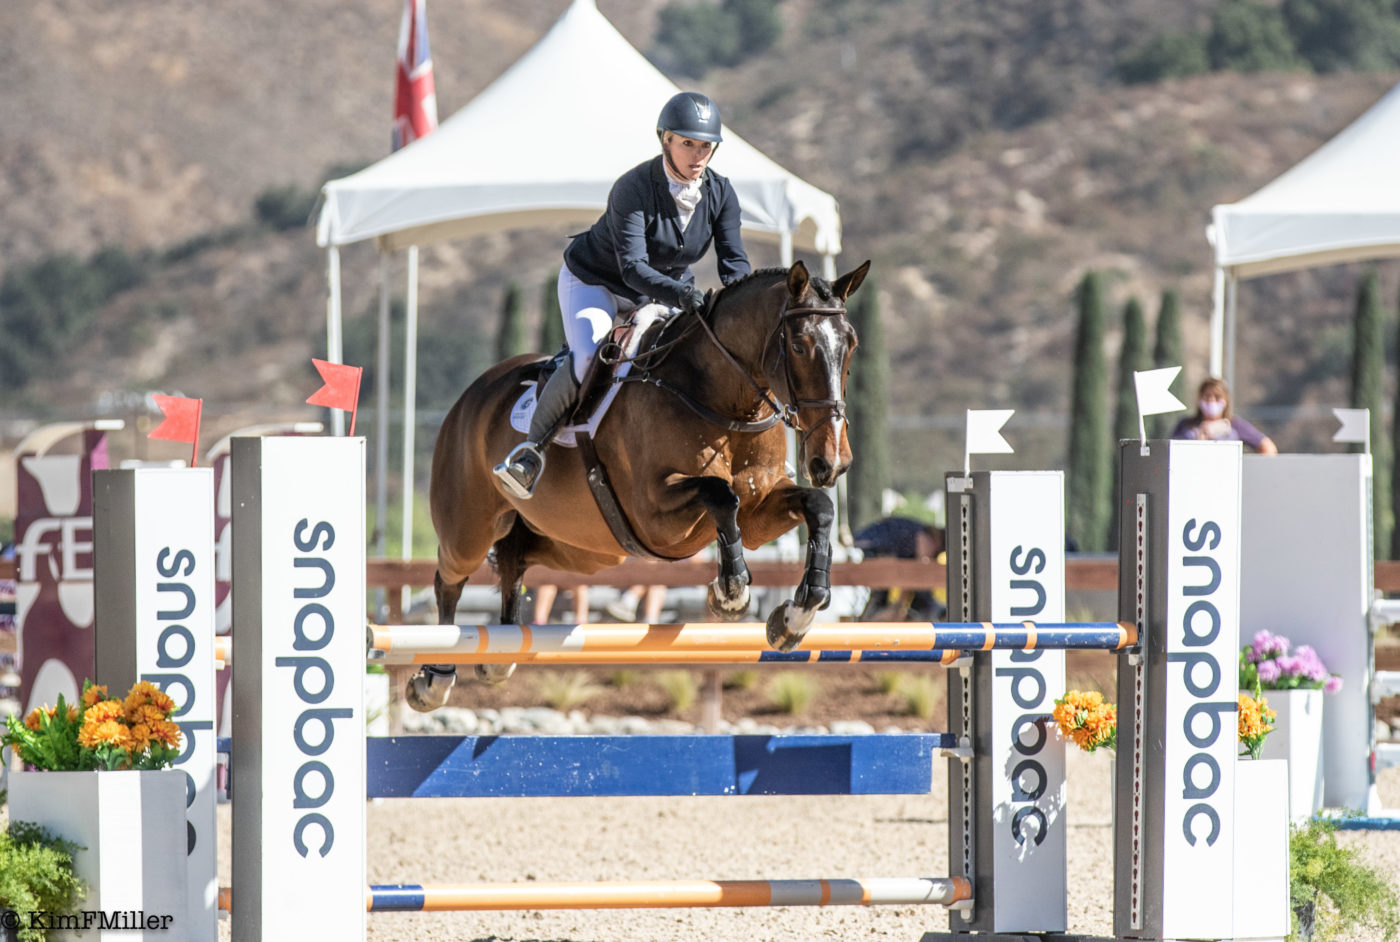 CCI2*-L - 1st - Lauren Burnell and Freedom Hill